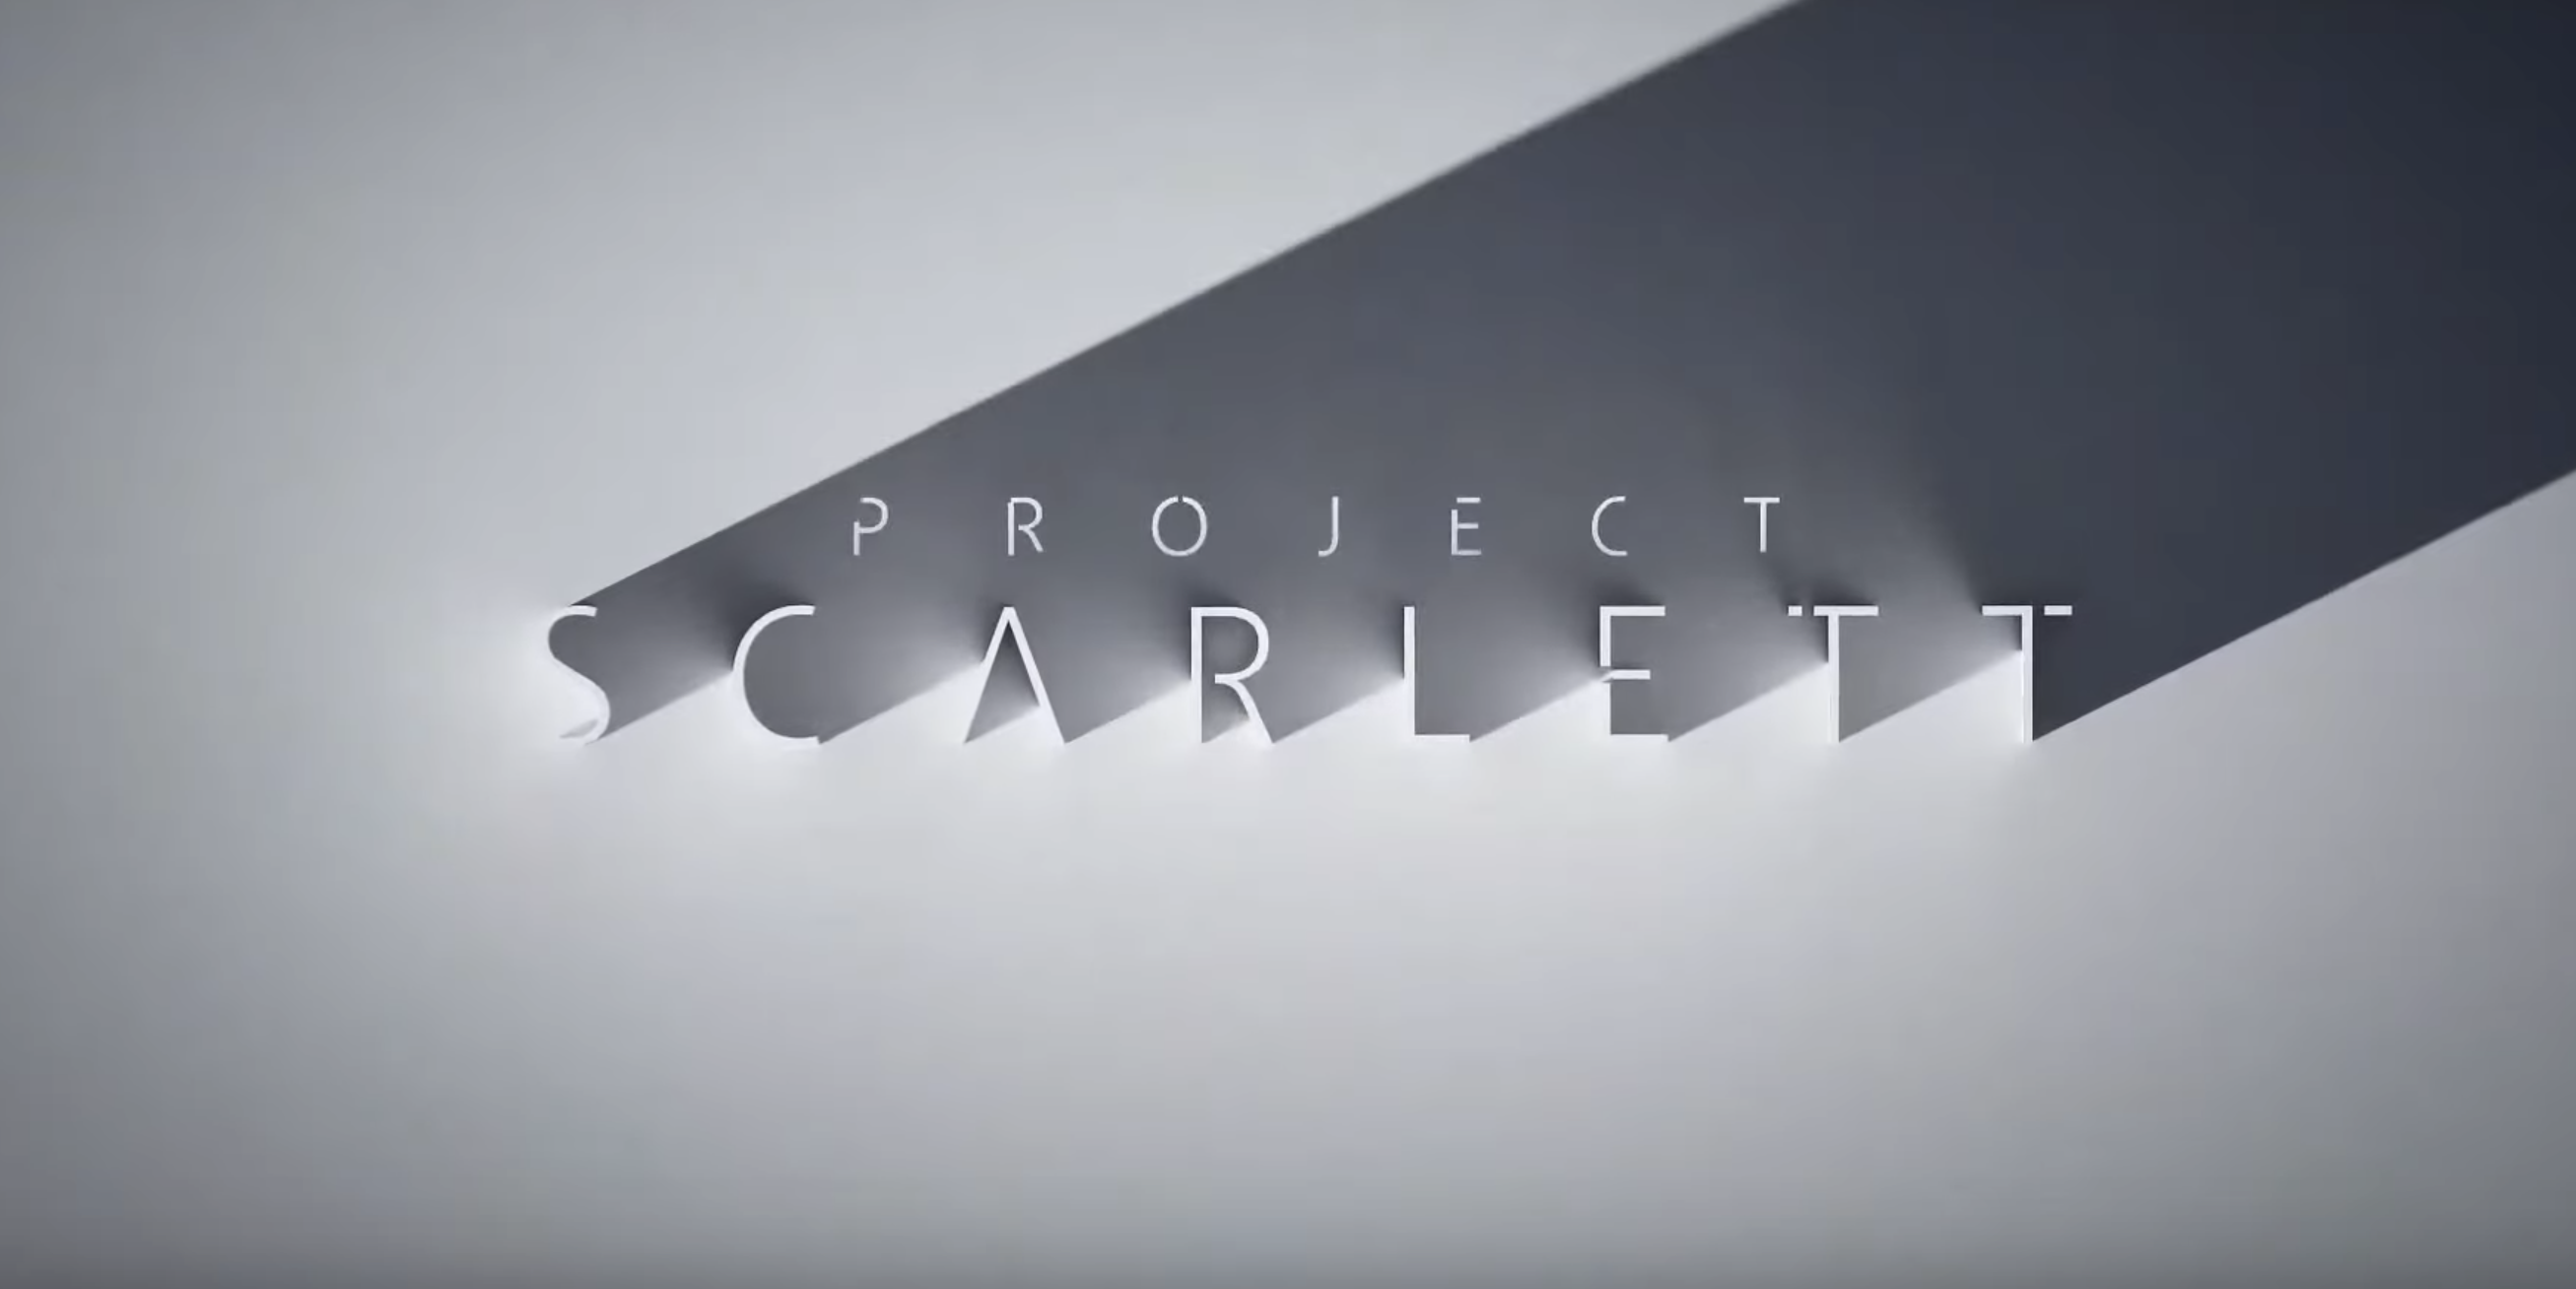 Project scarlett versus PlayStation 5